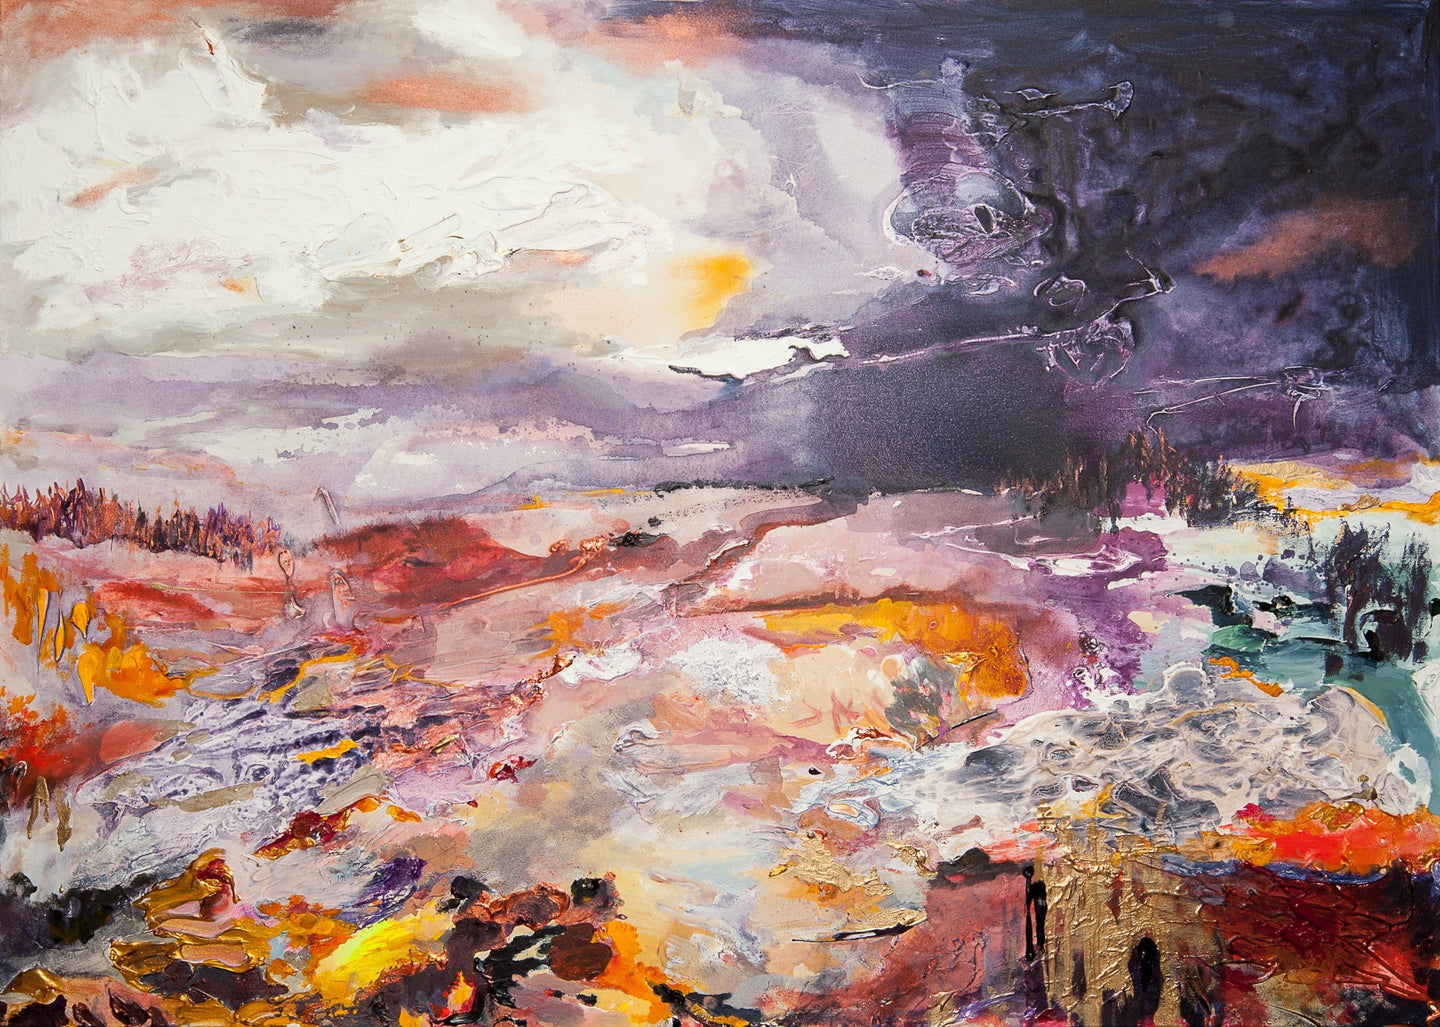 Summer's Retreat hand finished print by Hatti Pattisson for AUTHOR's collection of British-made luxury art